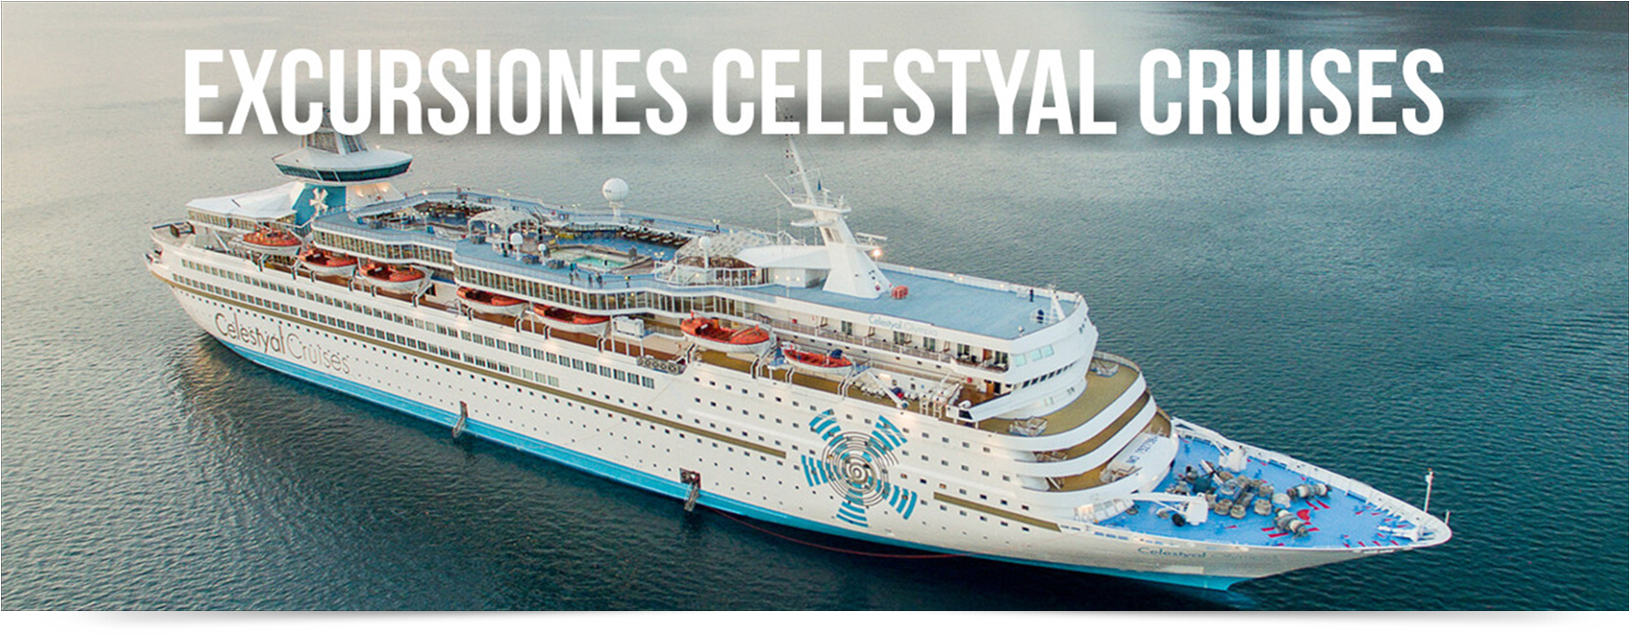 EXCURSIONES CRUCEROS CELESTYAL CRUISES